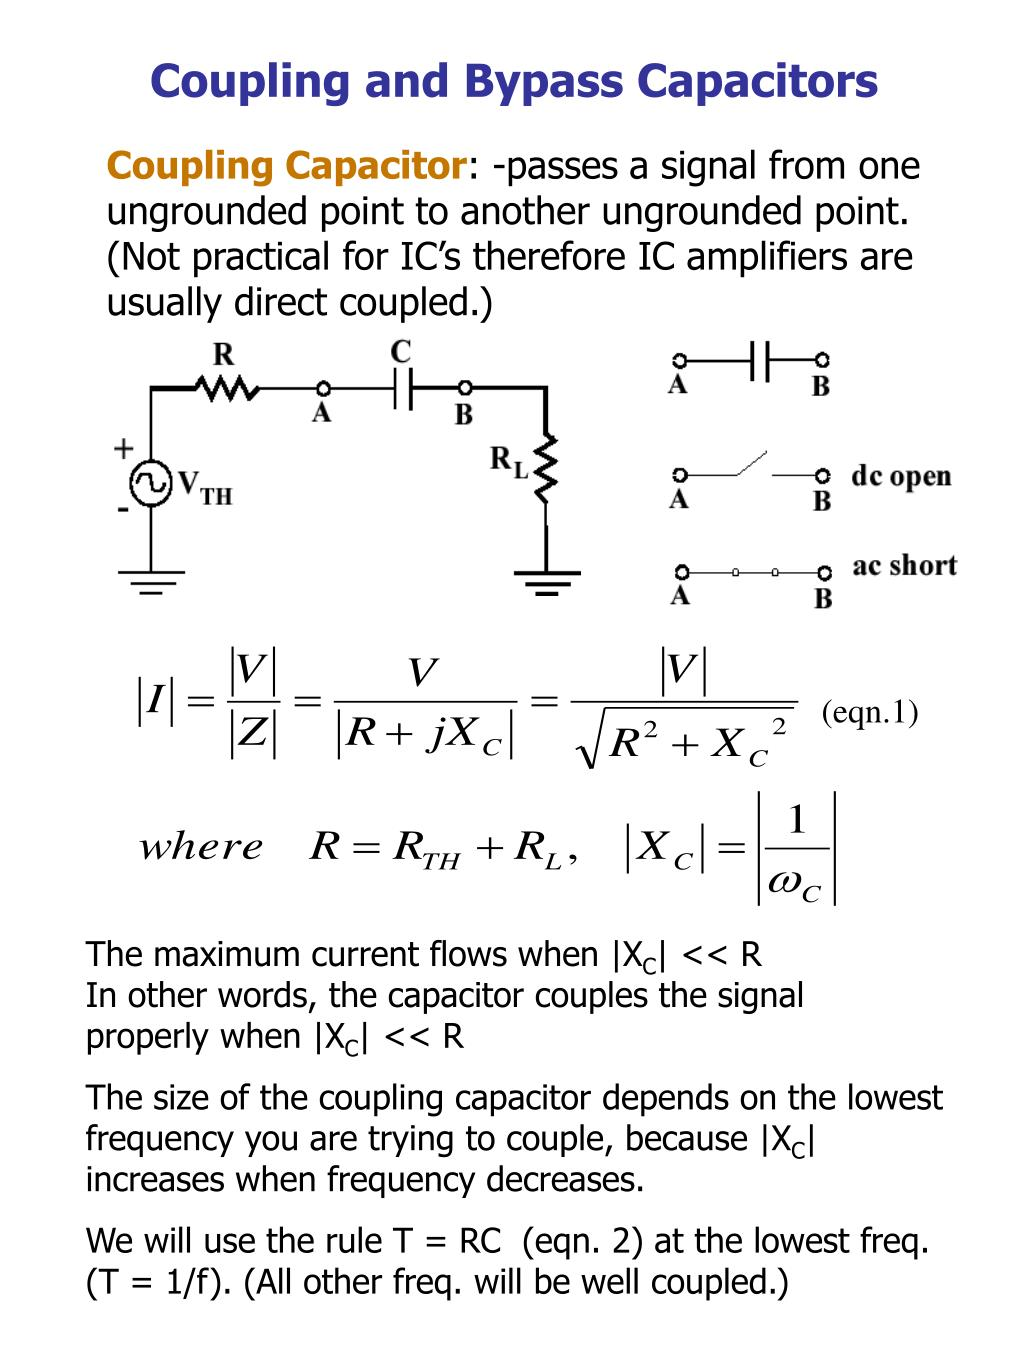 Ppt Coupling And Bypass Capacitors Powerpoint Presentation Id Find The Thvenin Equivalent Circuit With Respect To Capacitor N